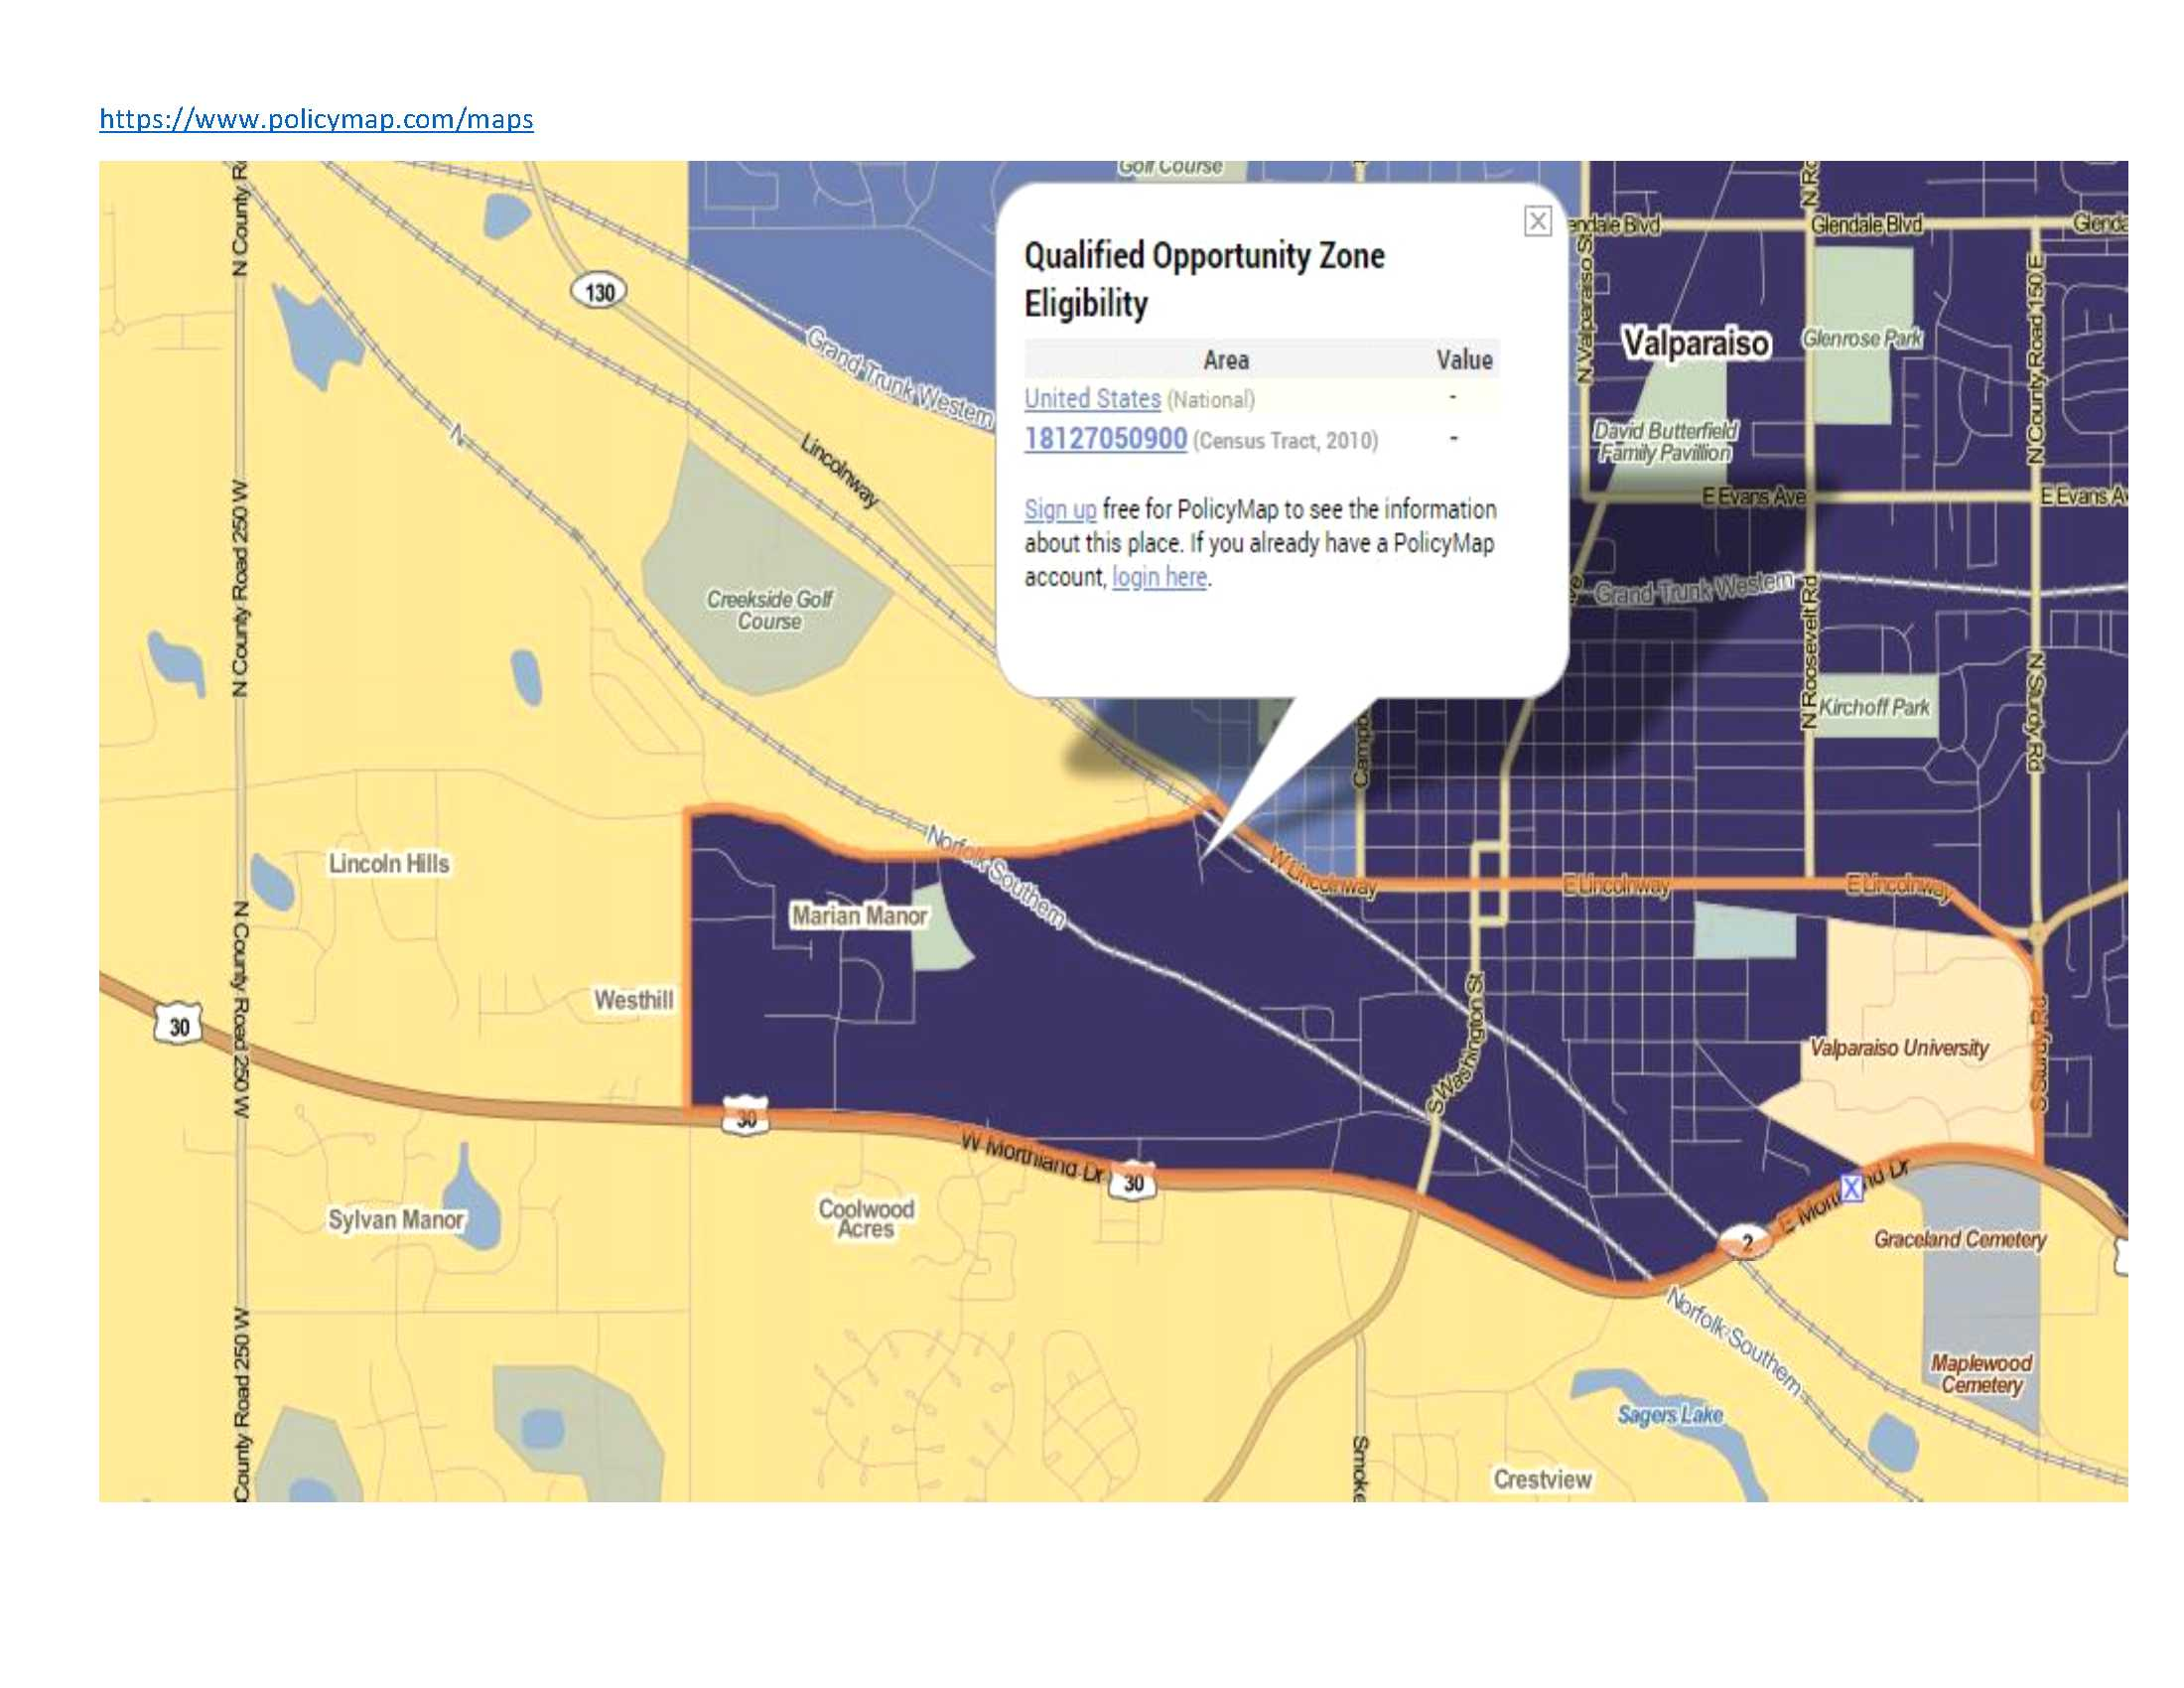 Opportunity Zone Map.pdf Opens in new window